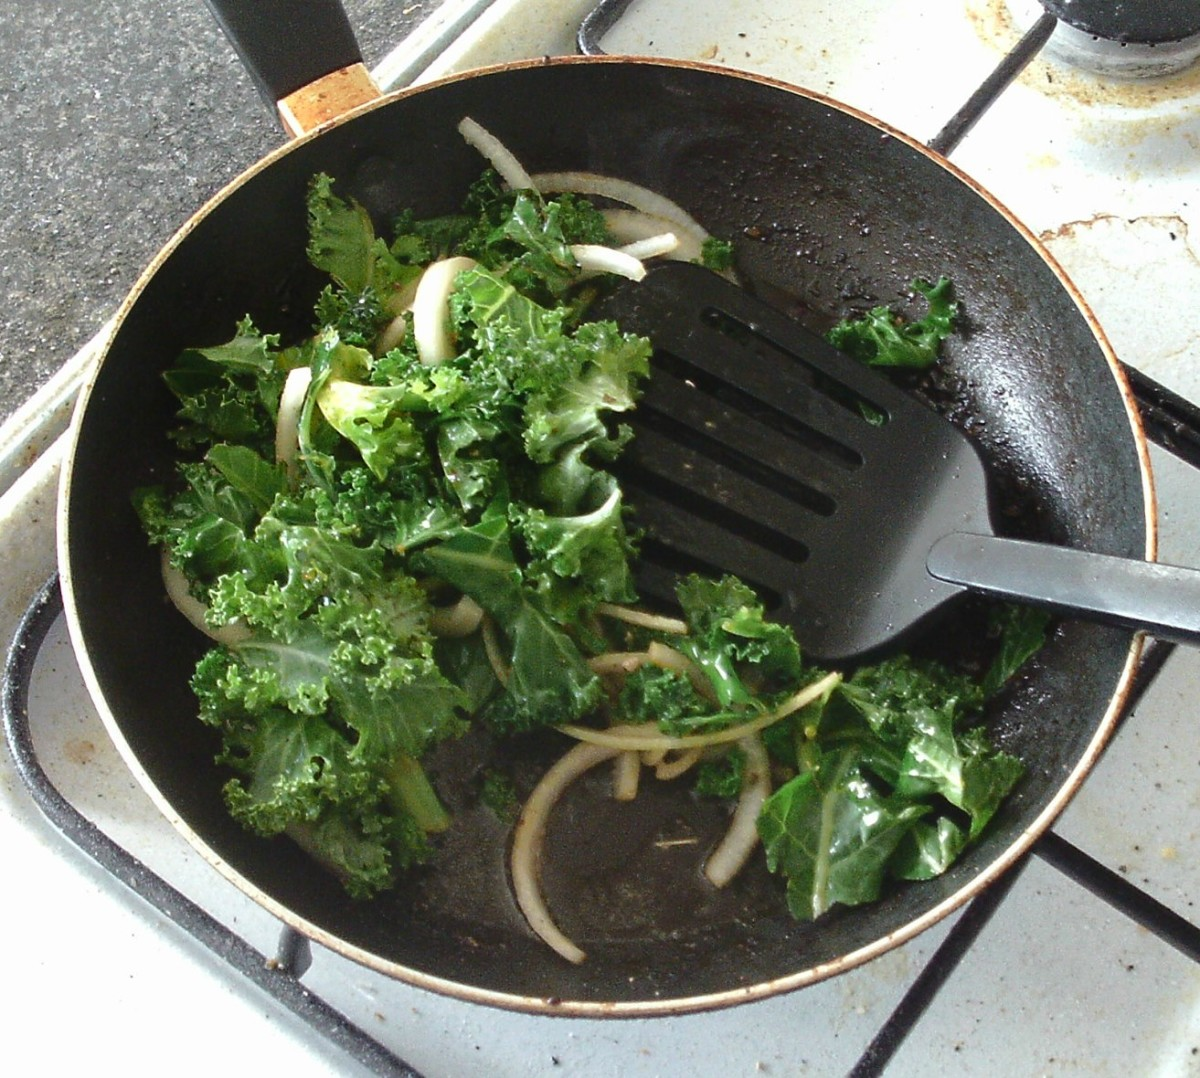 Kale and onion are gently sauteed in pork fat and juices